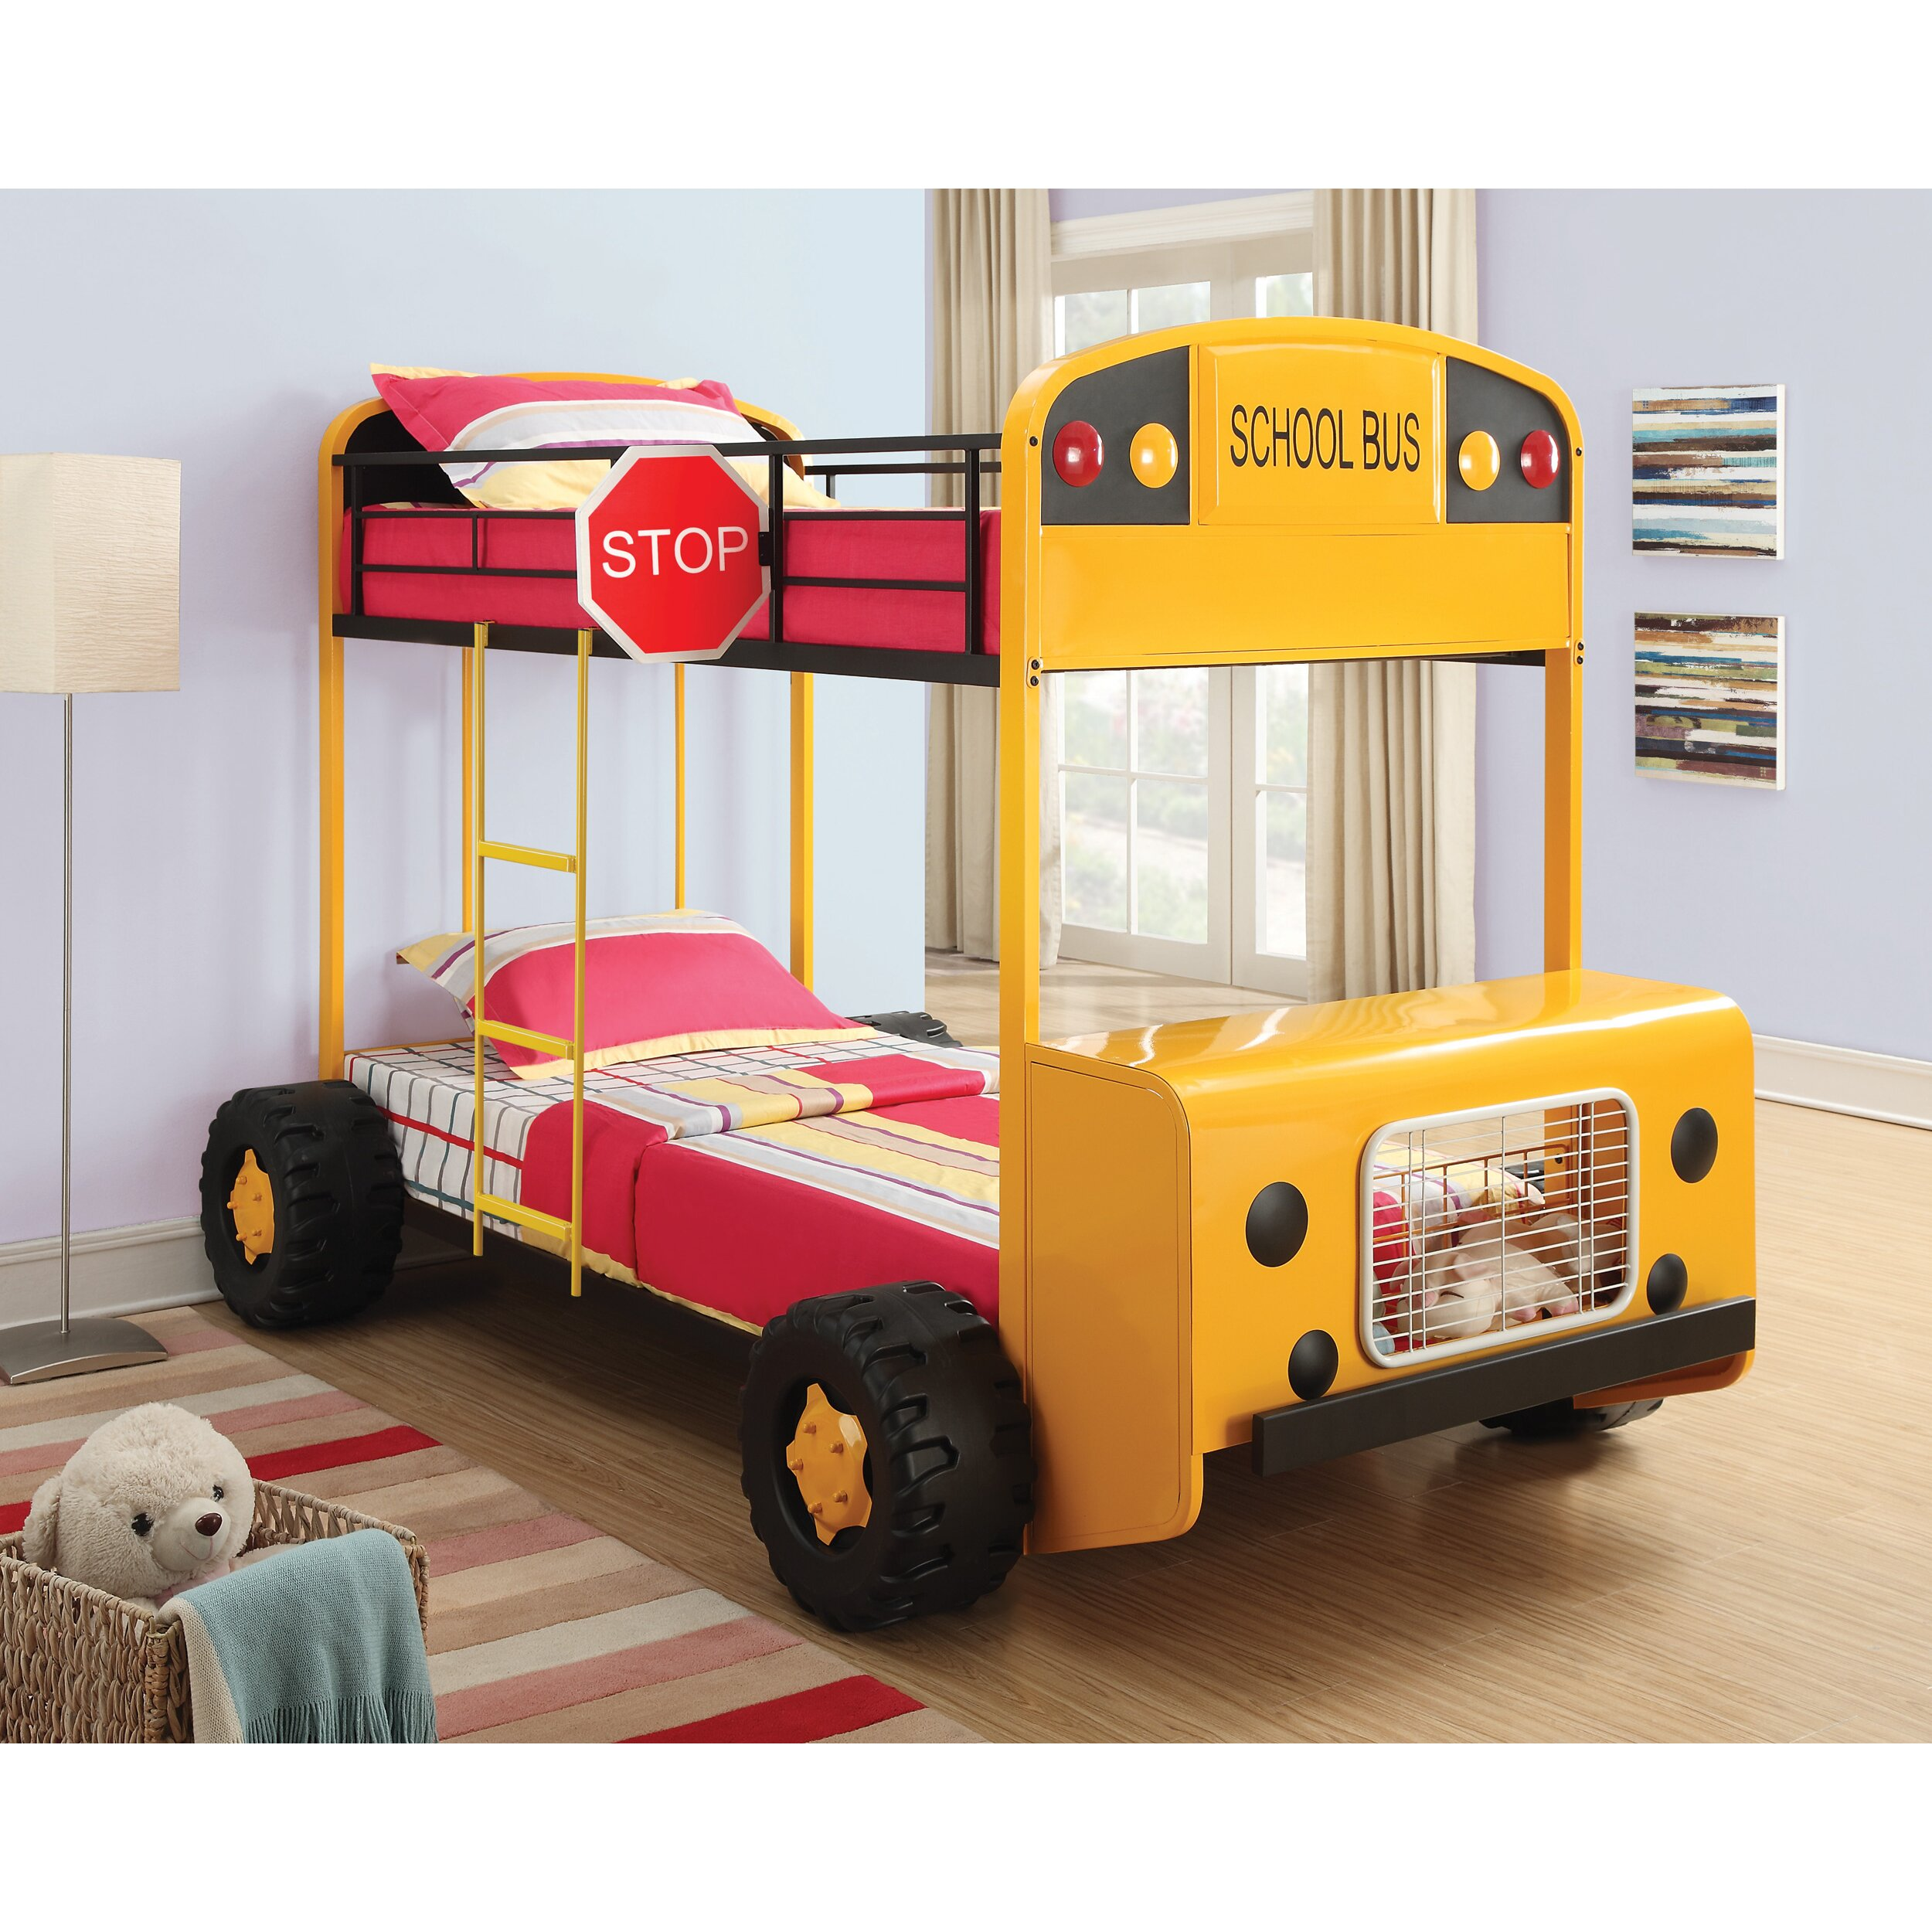 It Looks Like An Old, Abandoned School Bus. But When I Saw ... |School Bus Bed